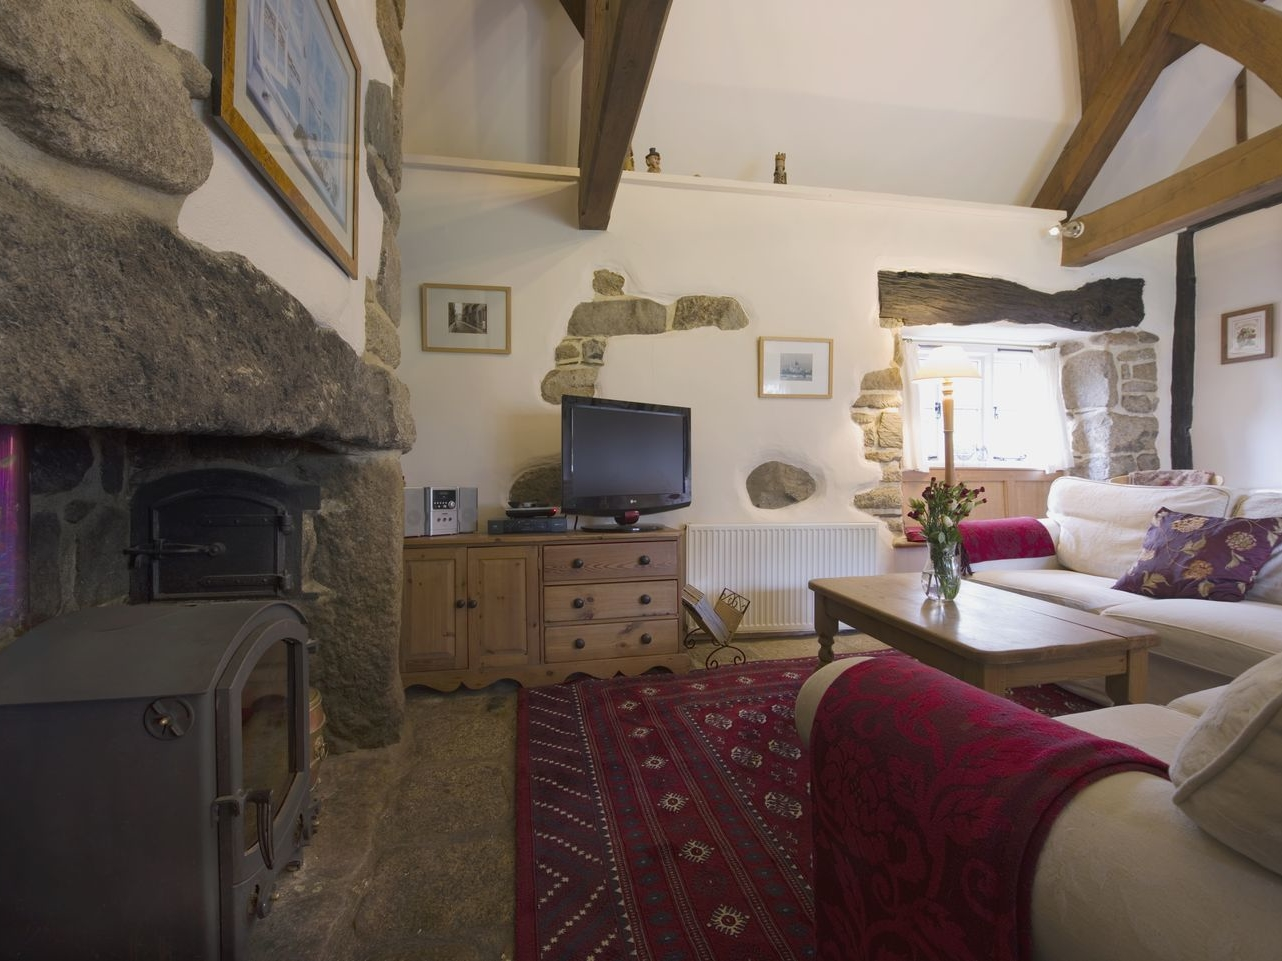 The Garden Cottage Image 3